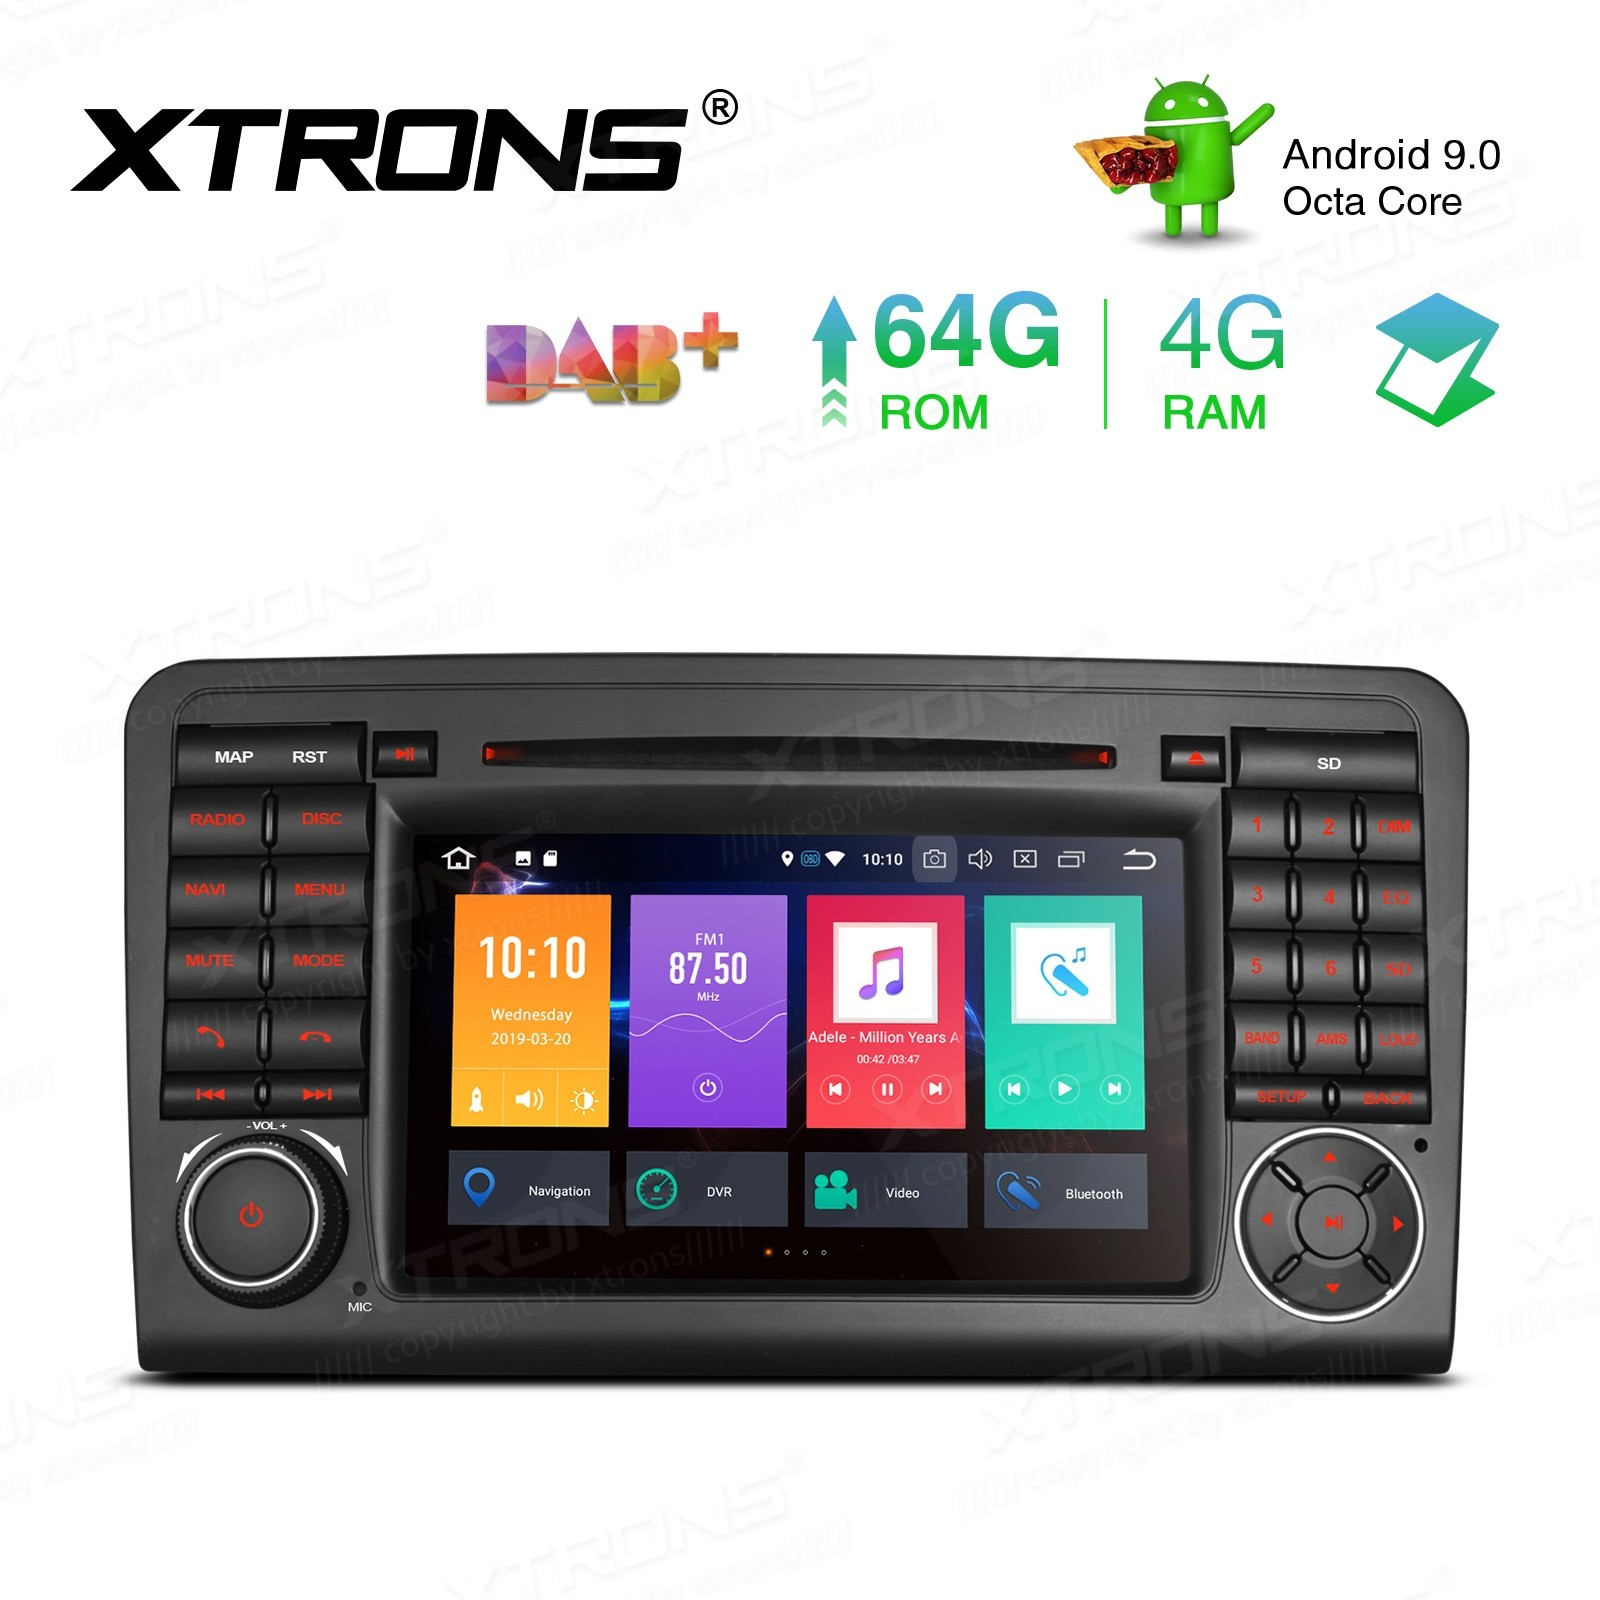 "7"" Android 9.0 Octa-Core 64GB ROM + 4G RAM DVD Player Car Multimedia GPS System support car auto play Custom fit for Mercedes-Bens"